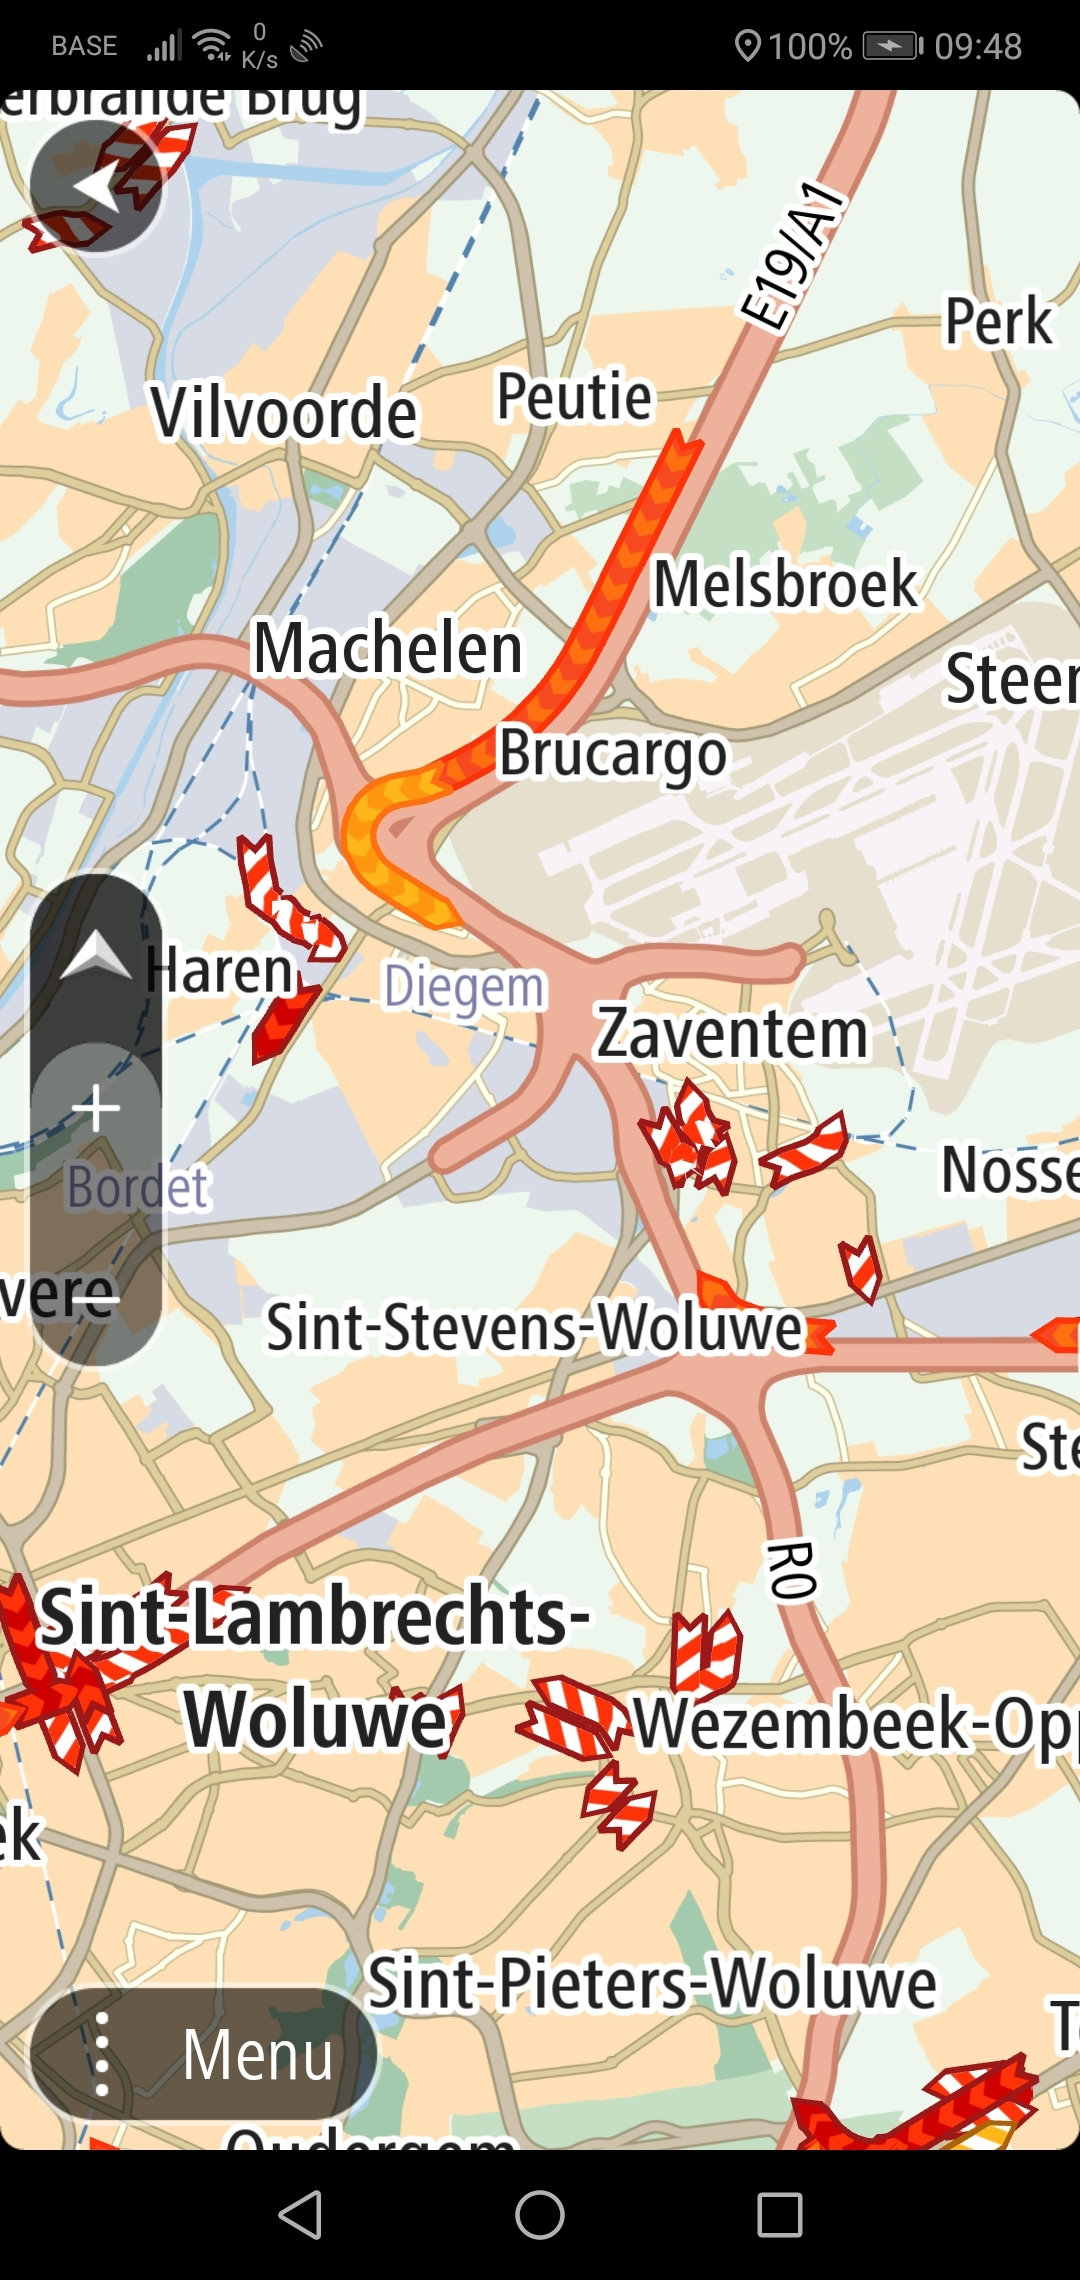 Cannot connect to TomTom- Try again later- GO mobile Android